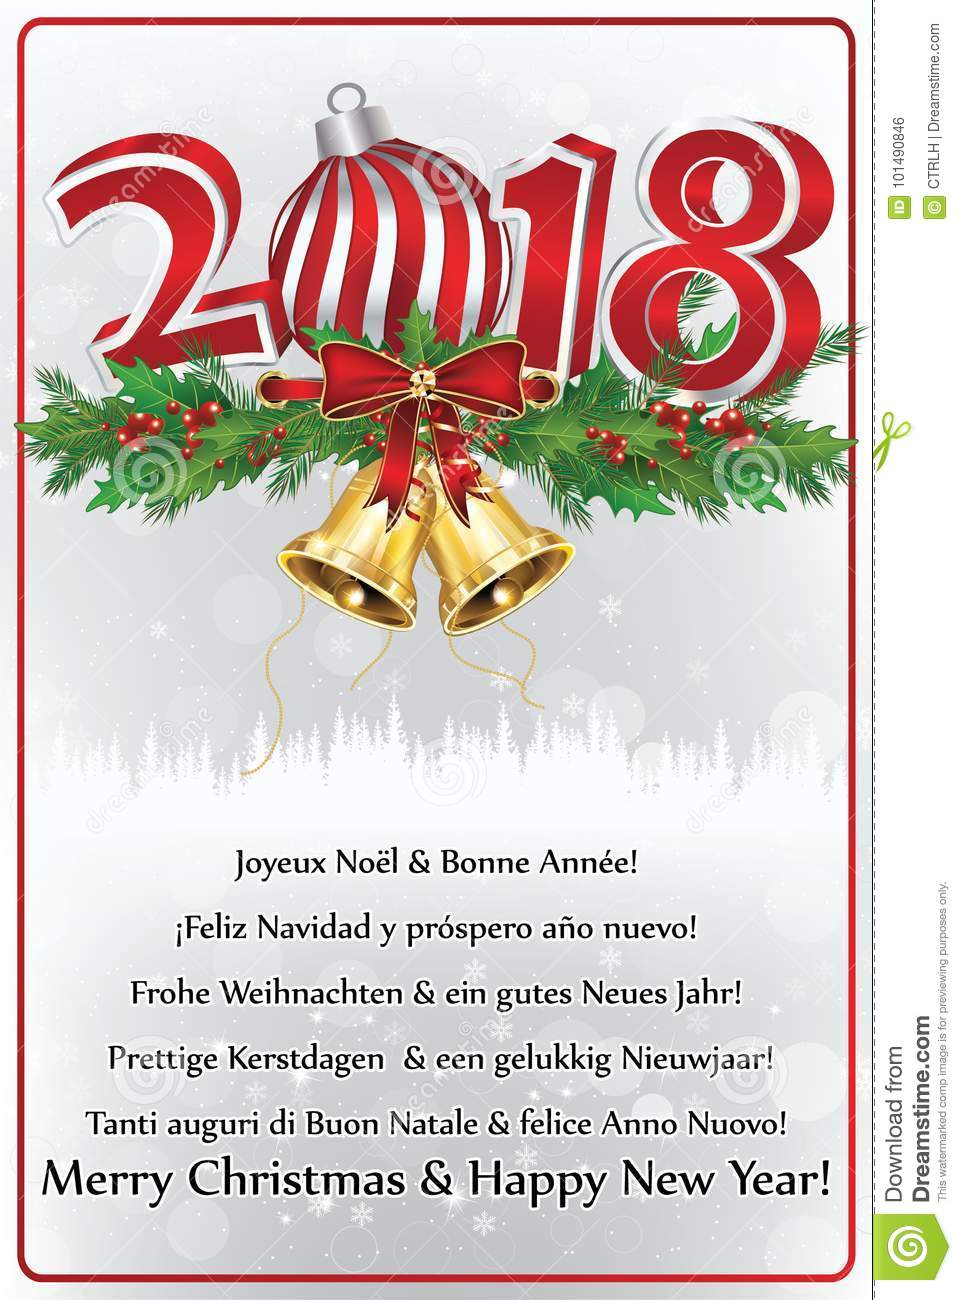 Christmas Wishes Christmas Wishes In Many Languages. Stock Illustration